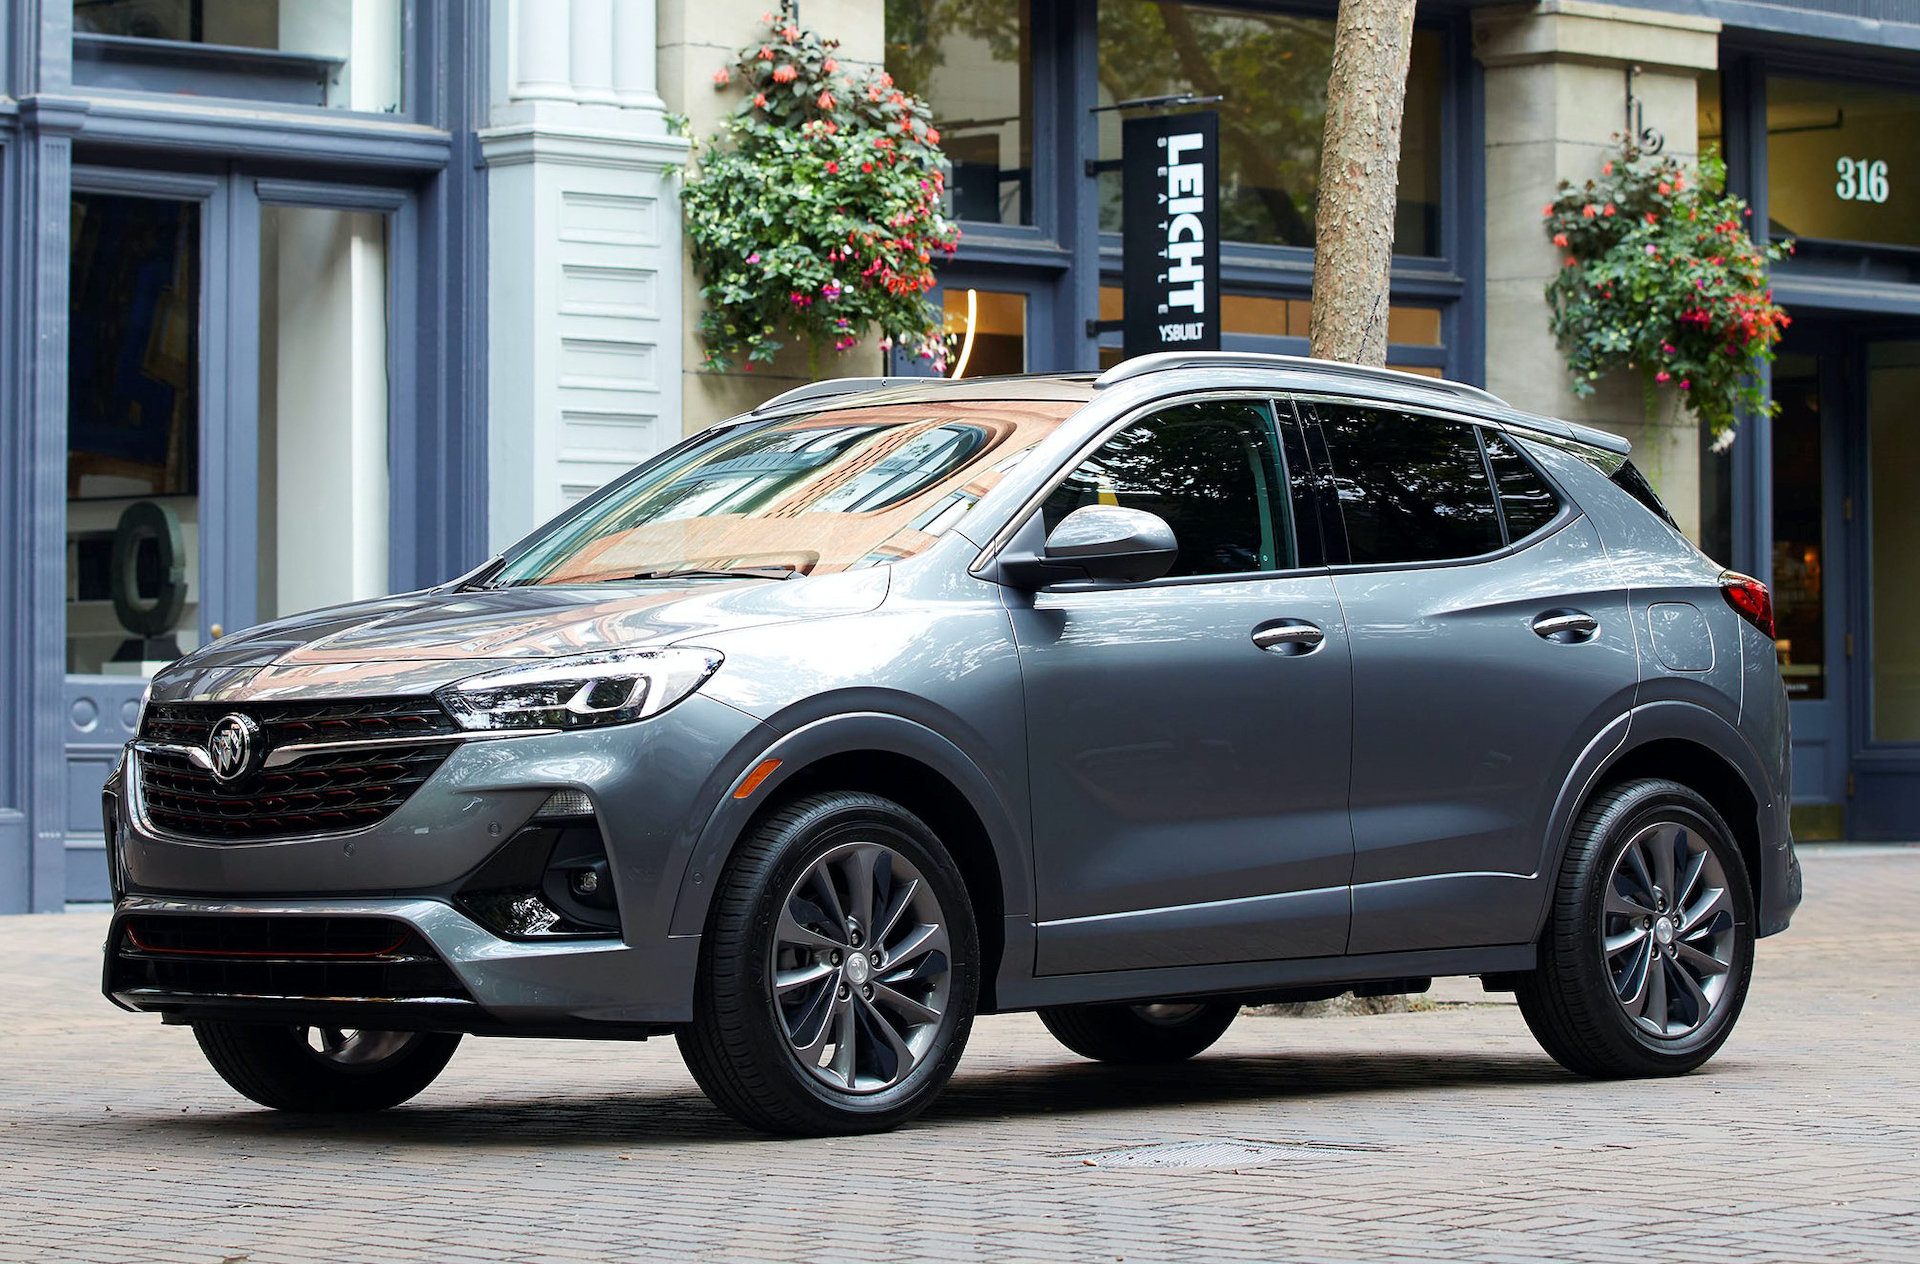 2021 Buick Encore Review, Ratings, Specs, Prices, And Photos Where Is The New 2021 Buick Encore Gx Built